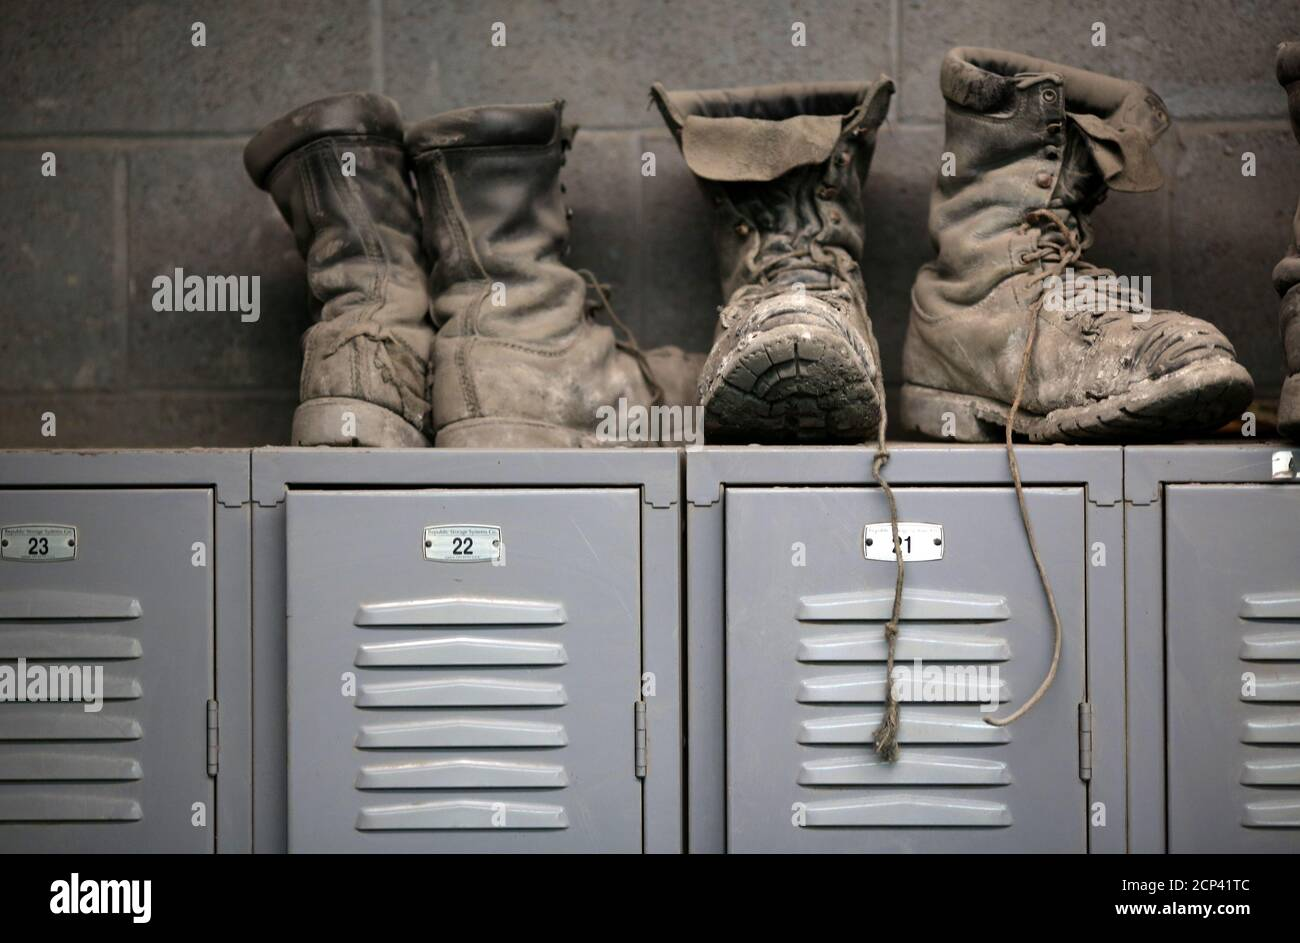 Miners Boots High Resolution Stock